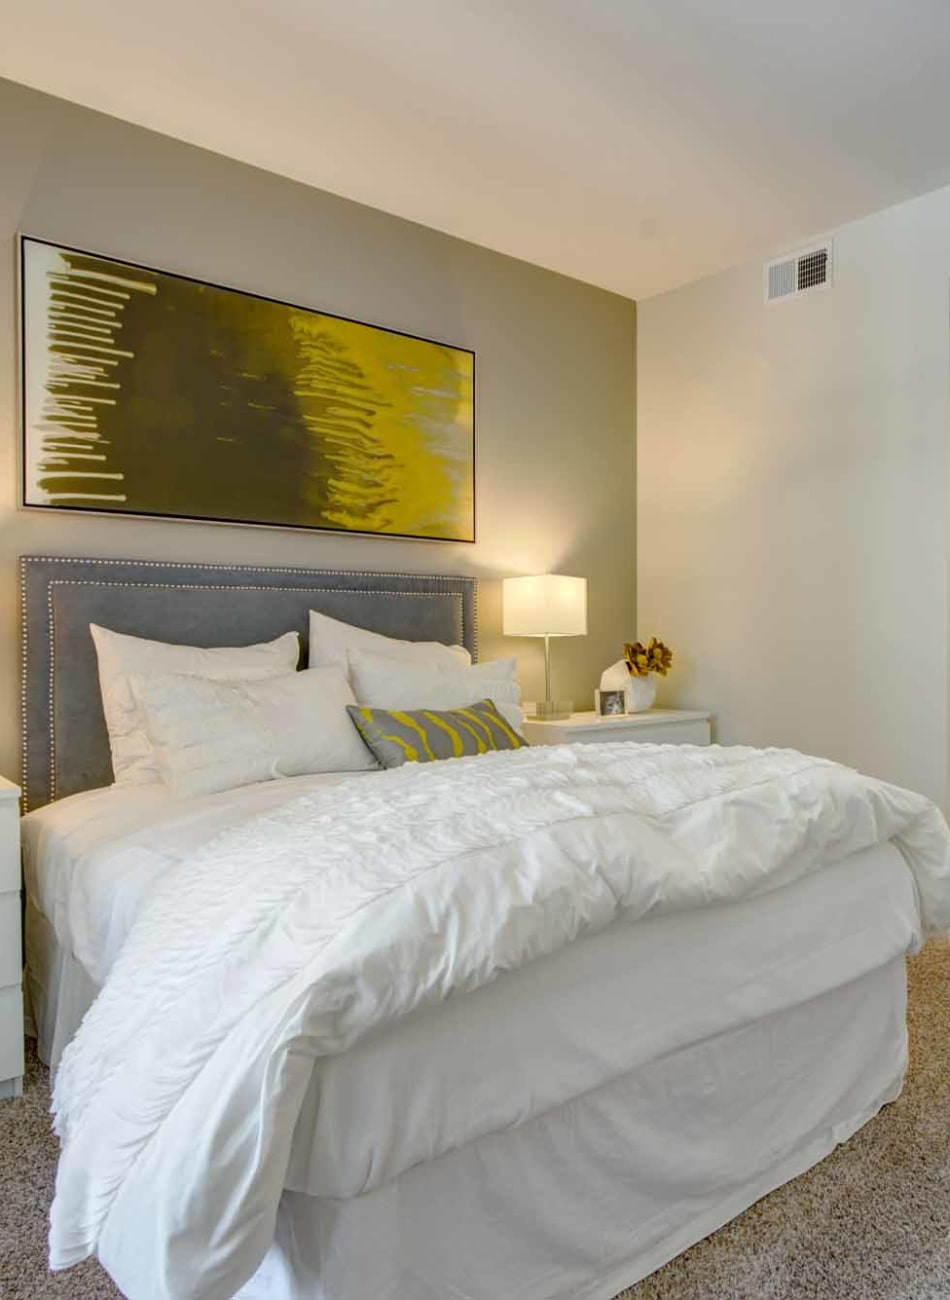 Master bedroom with a walk-in closet at Domus on the Boulevard in Mountain View, California